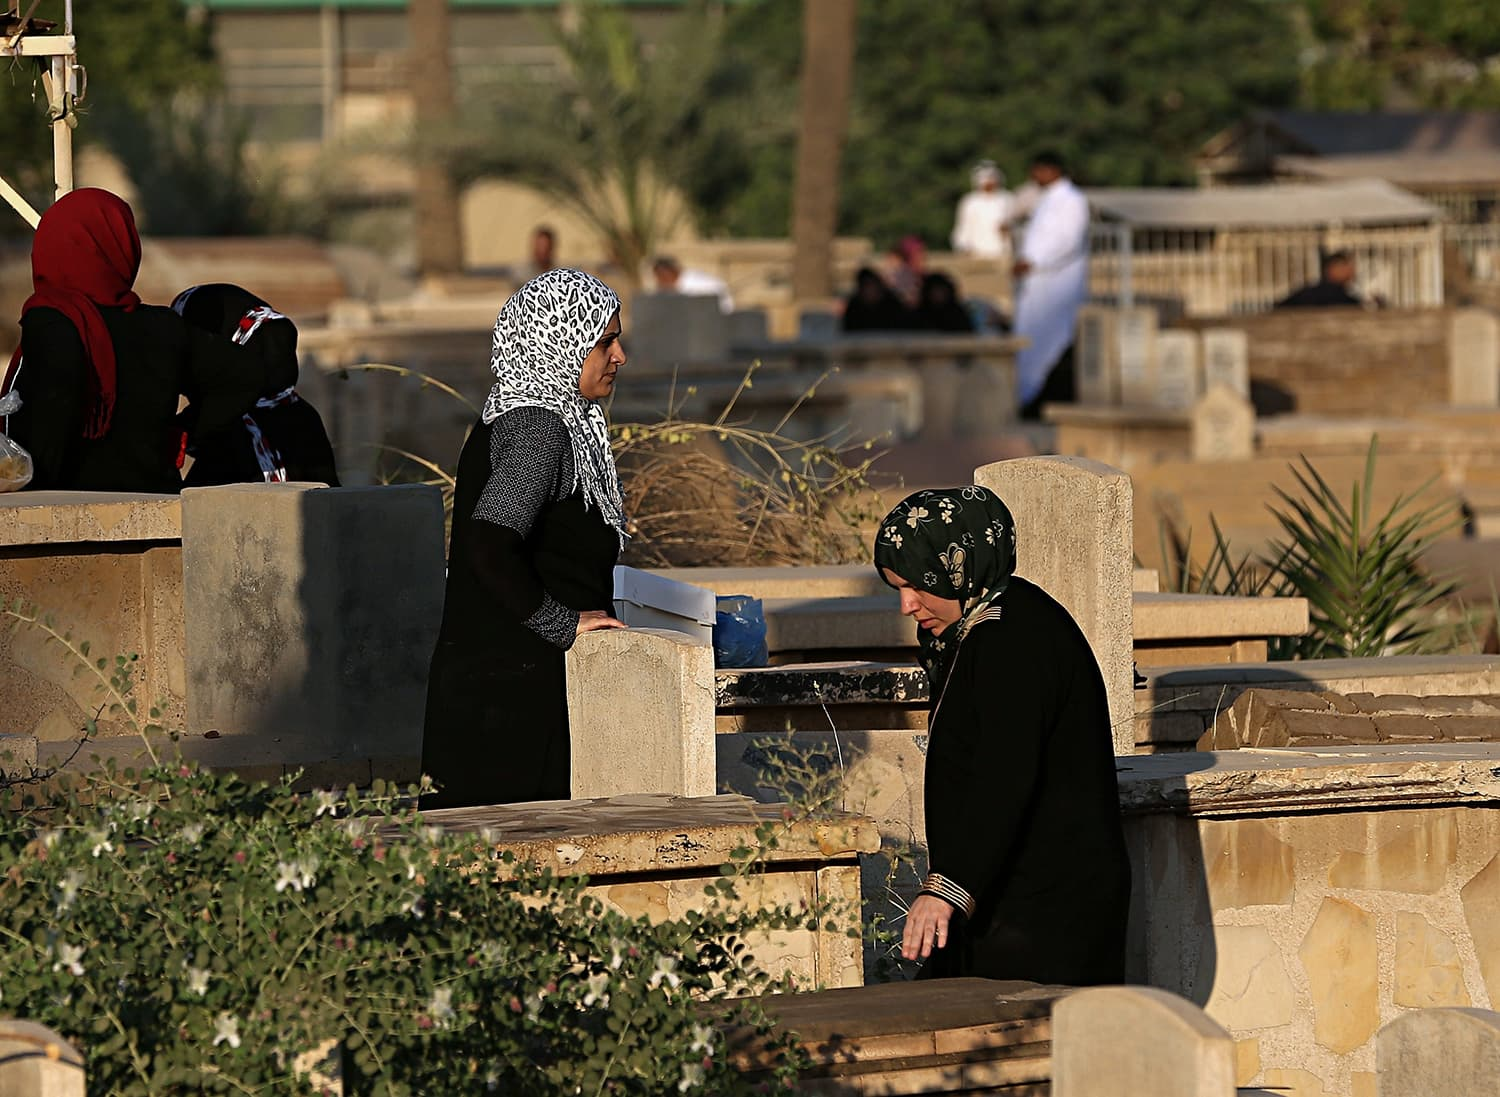 Iraqis visit the graves of relatives on the first day of Eidul Fitr at Ghazali cemetery in Baghdad, Iraq. — AP